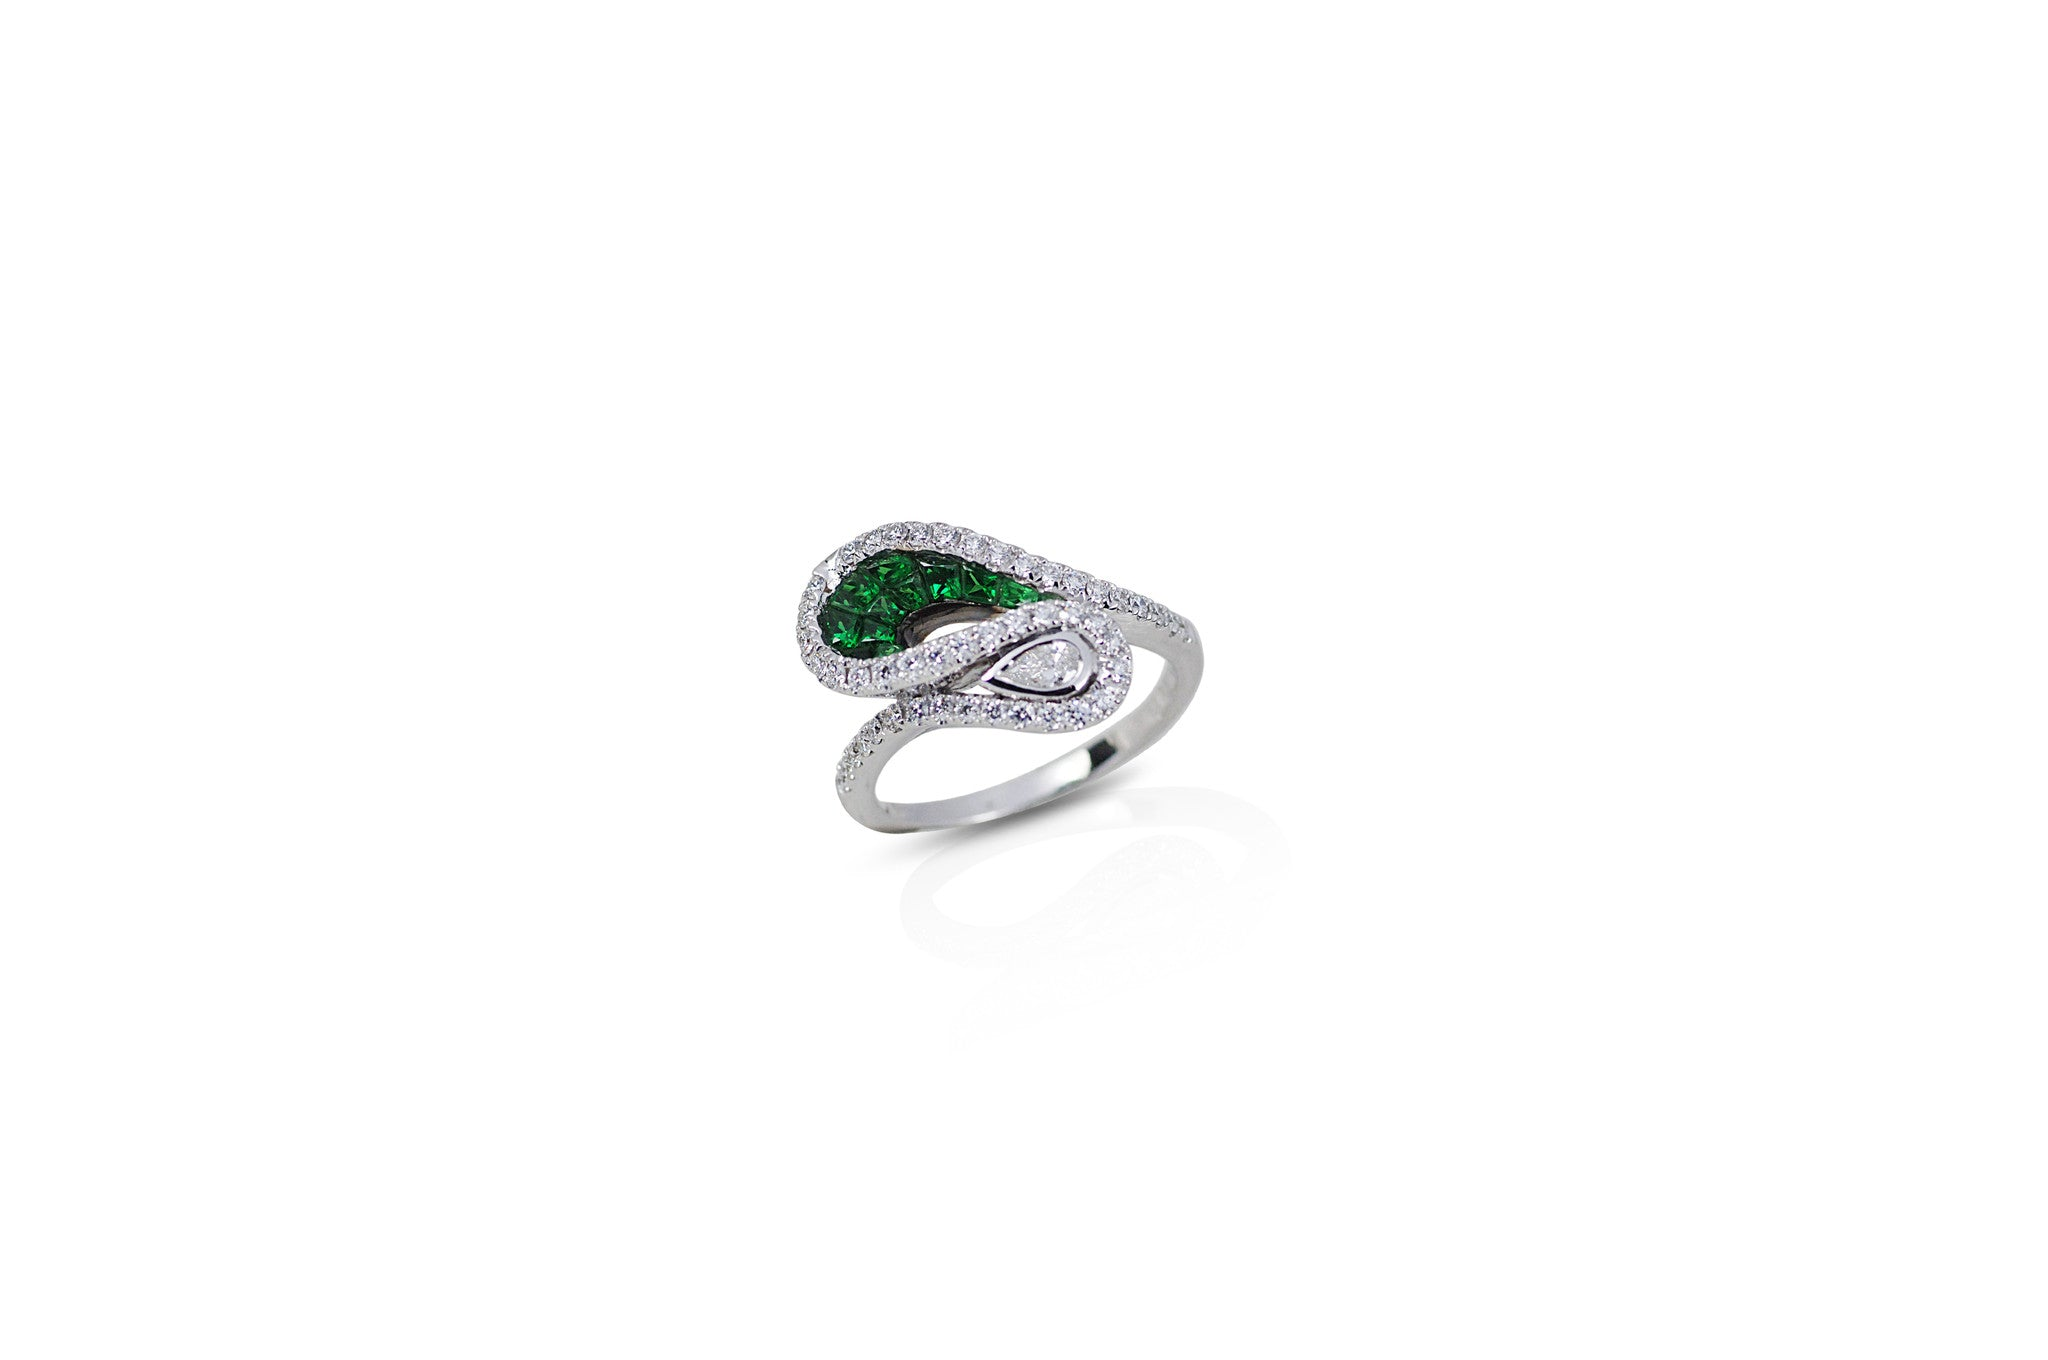 Talay Wave Invi-Drop Tsavorite Garnet and Diamond Ring